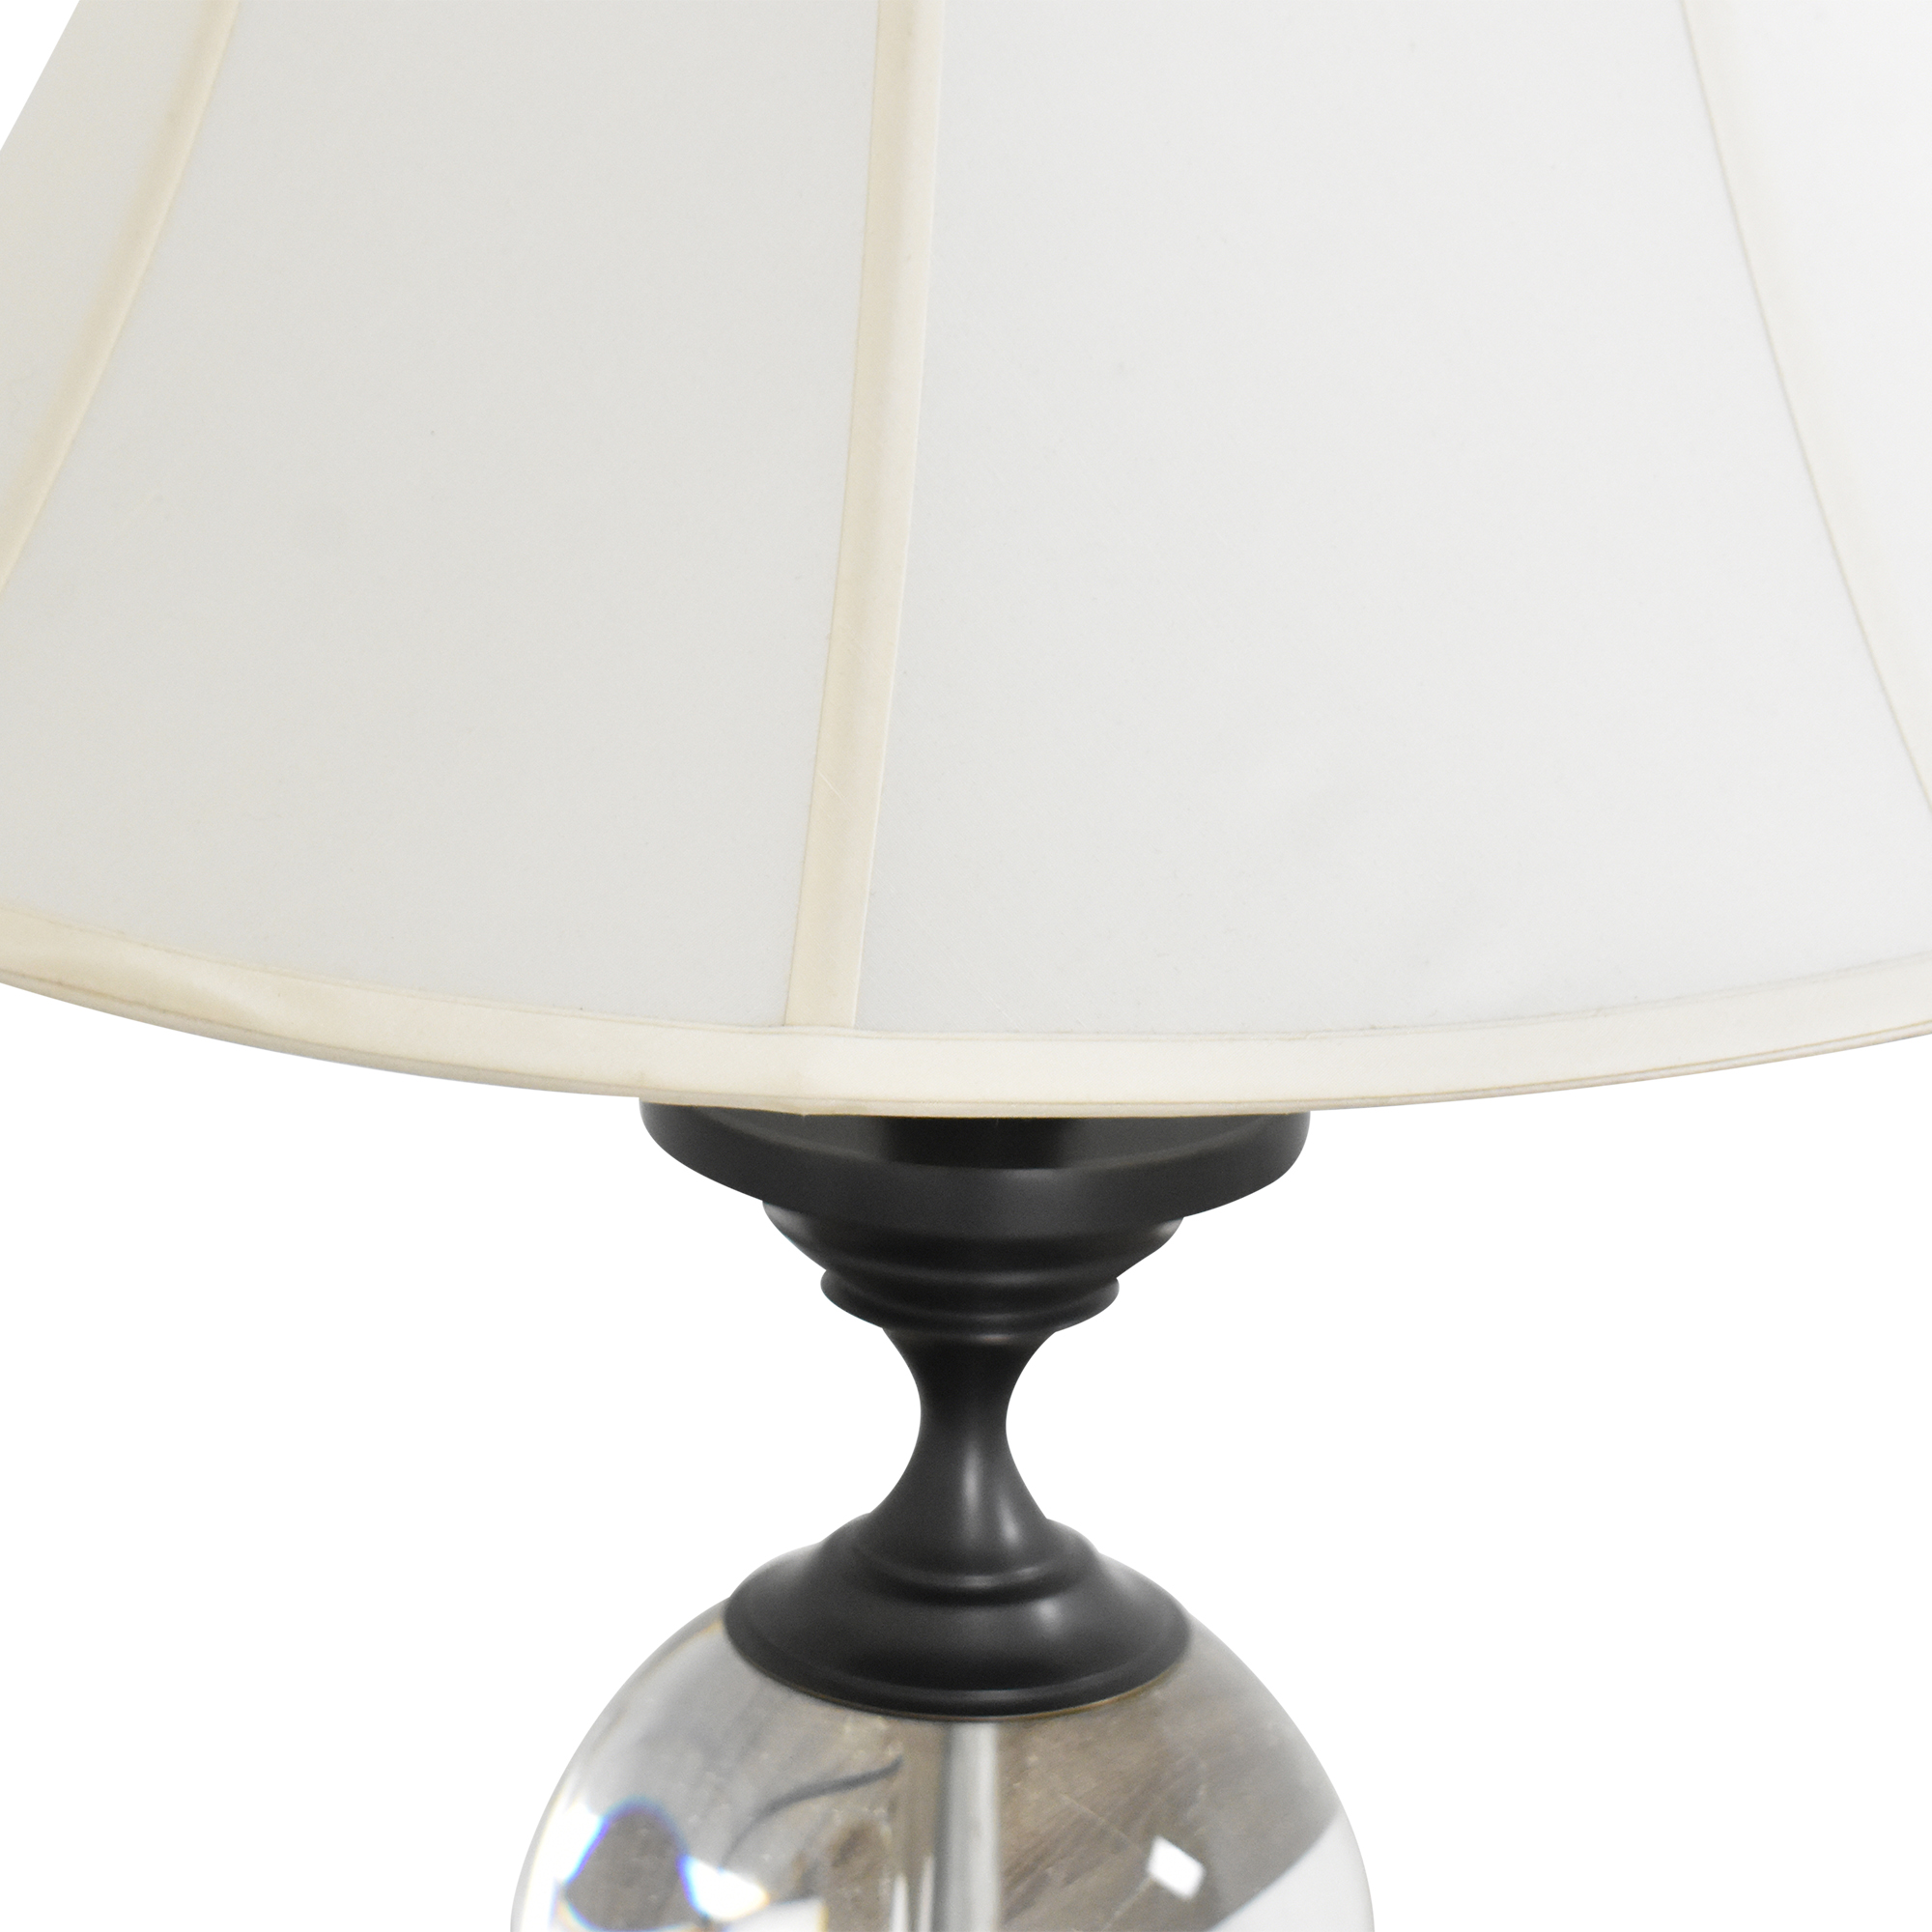 Restoration Hardware Restoration Hardware Crystal Ball Small Urn Table Lamp on sale